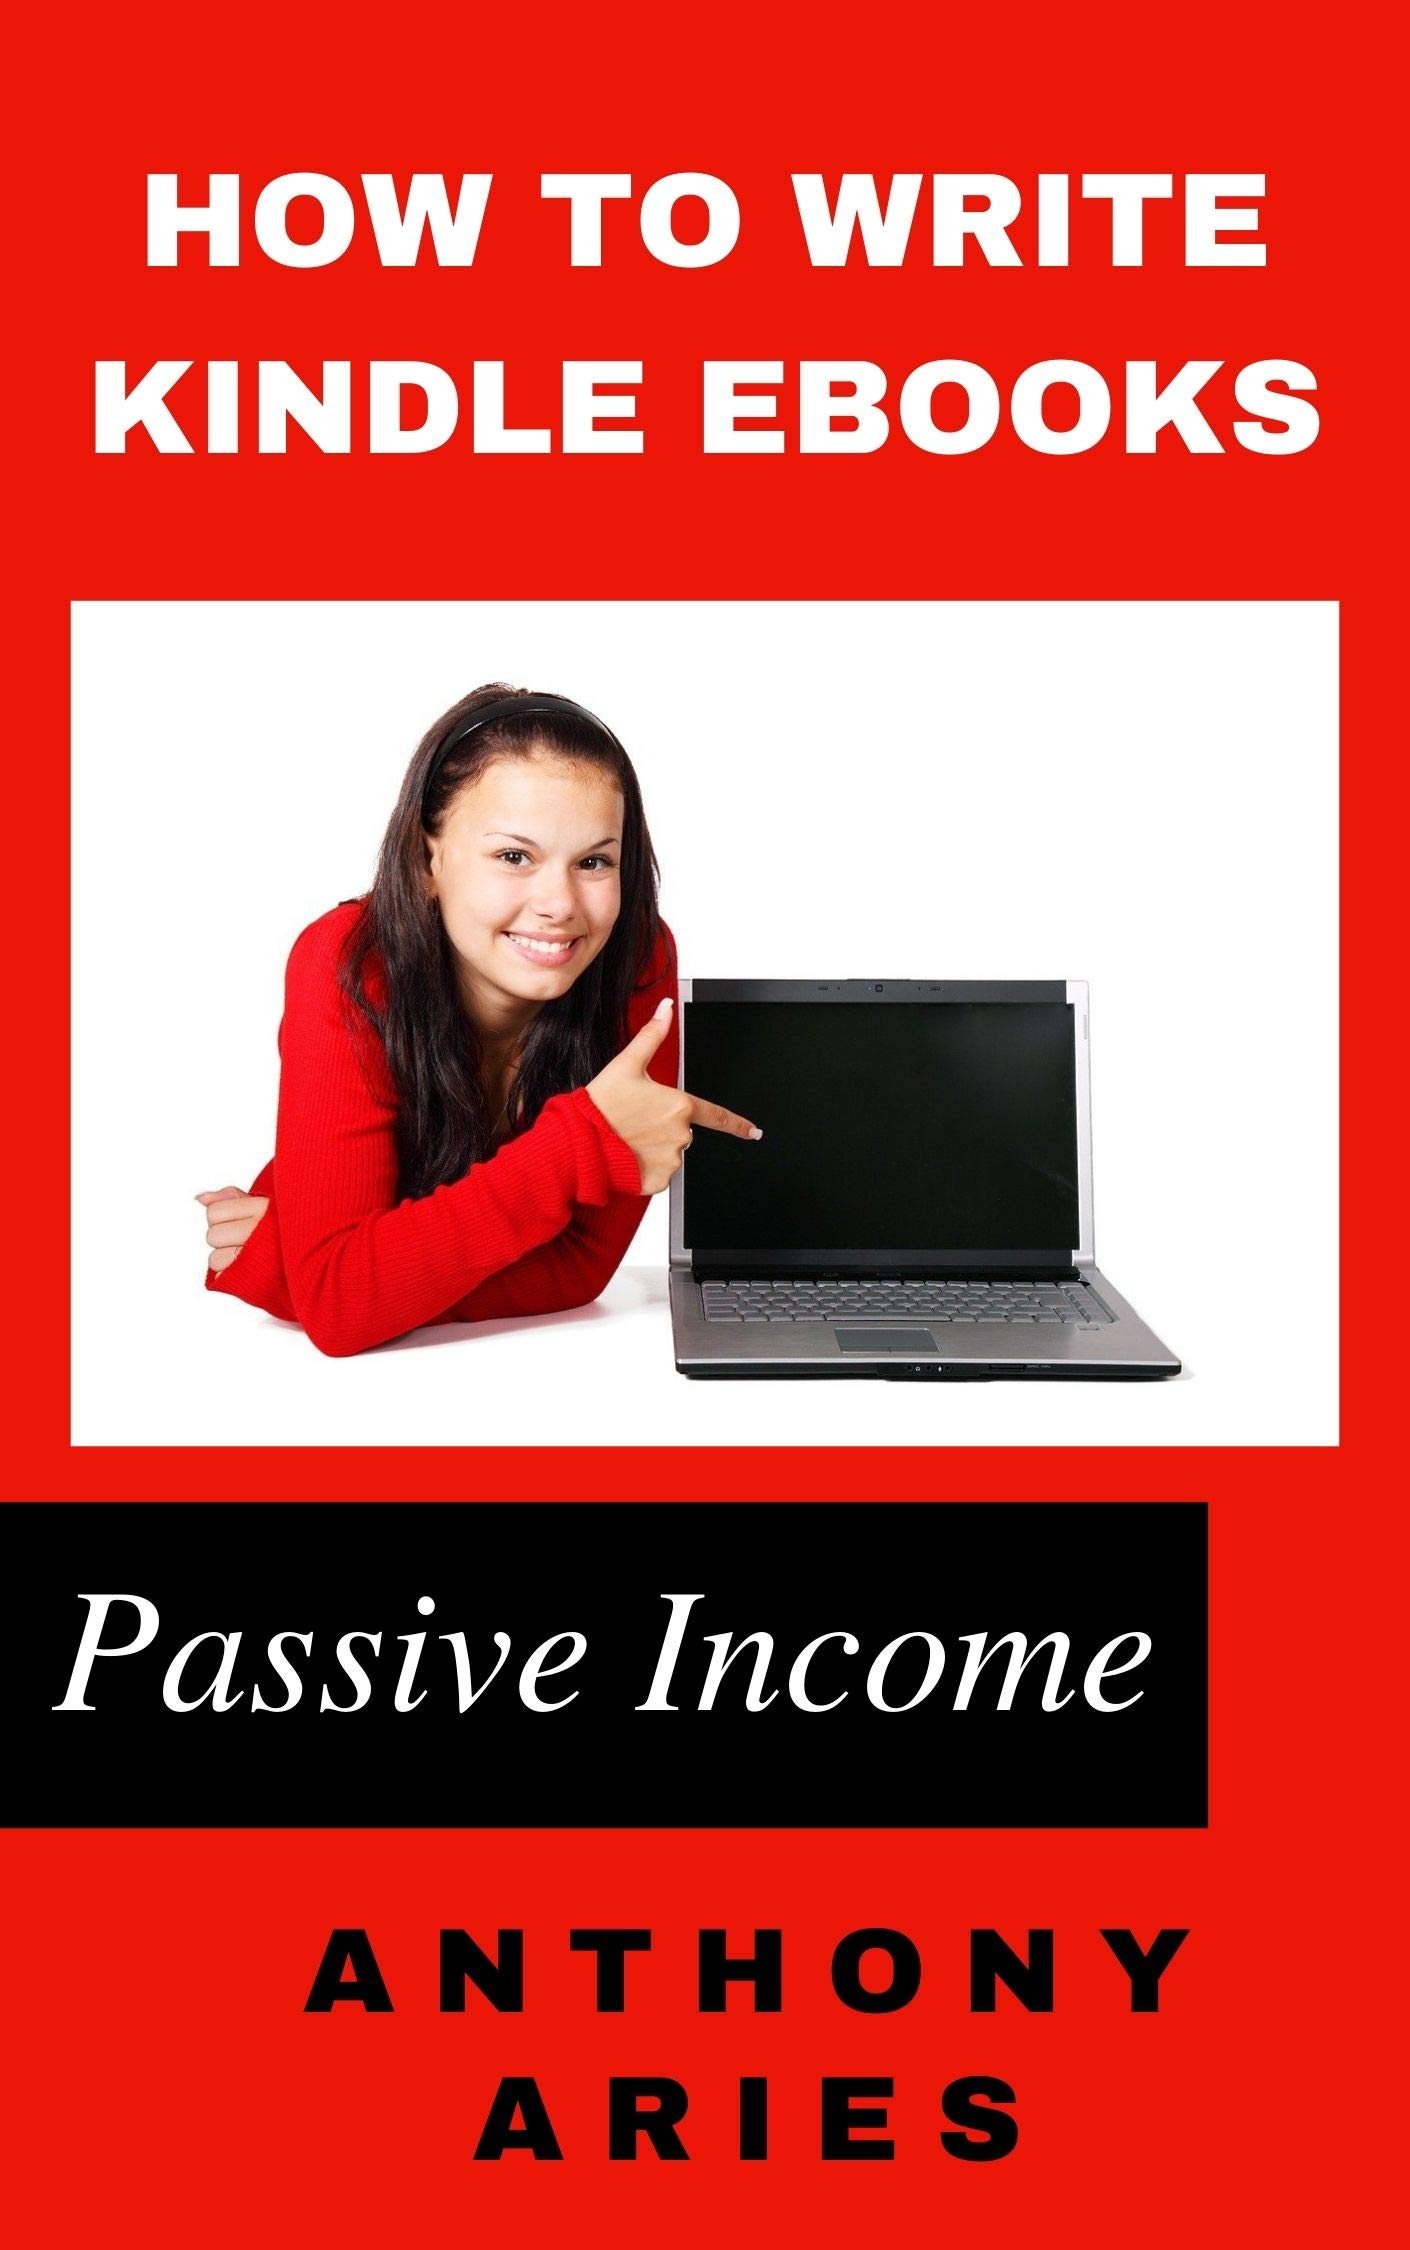 How To Write A Kindle Book: Master Kindle Ebook Self-Publishing in 1 day or less and Passive Income Online For Beginners